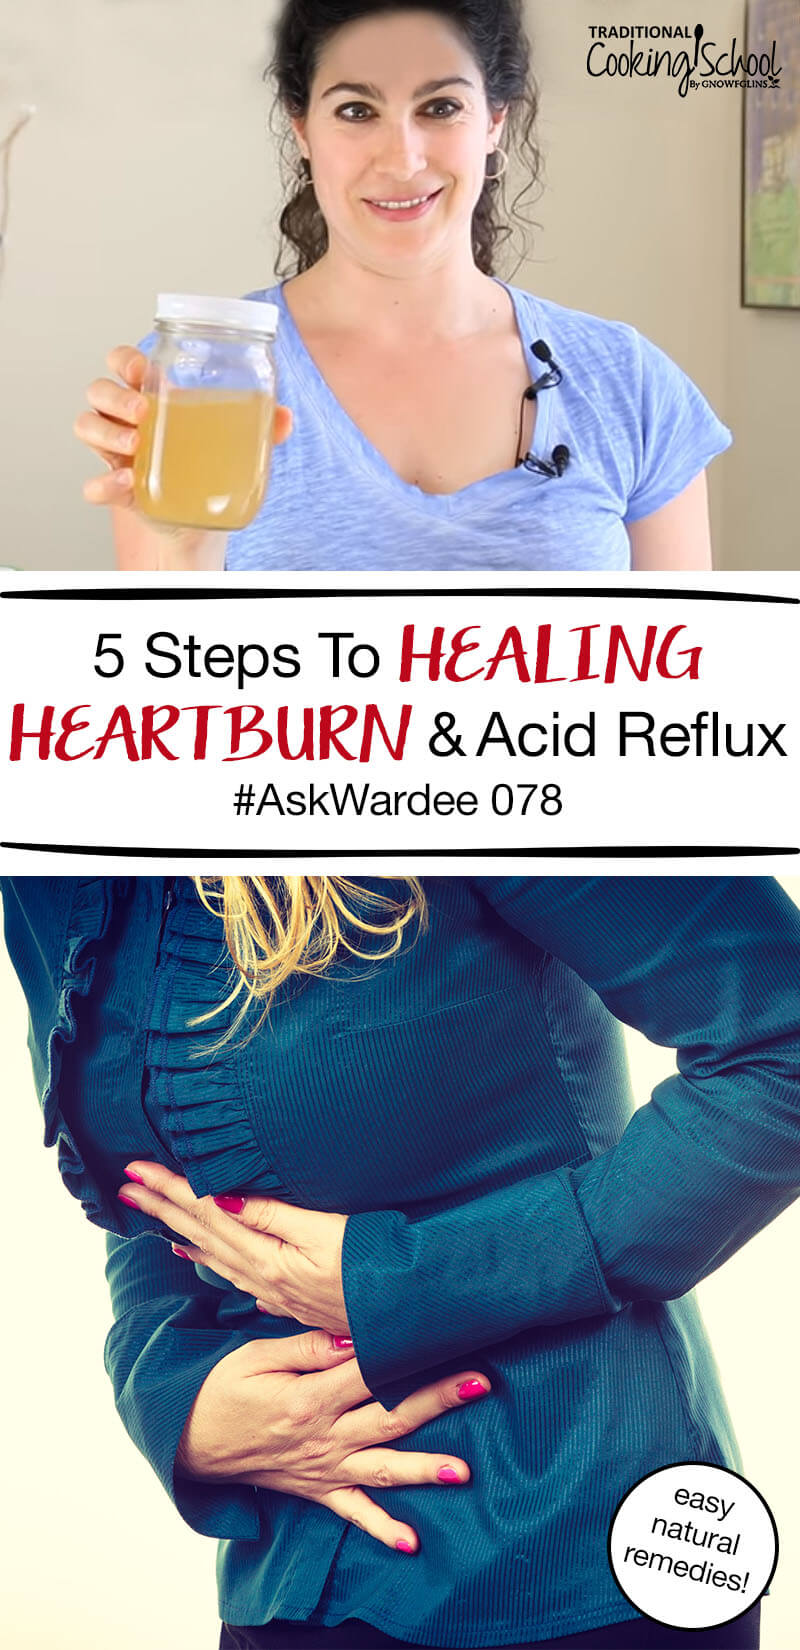 Is heartburn or acid reflux making eating (or even just living) difficult? Are you tired of managing heartburn with prescriptions that don't actually heal? Watch, listen, or read for my 5 steps to healing heartburn and acid reflux through diet, lifestyle, and natural remedies! | AskWardee.tv